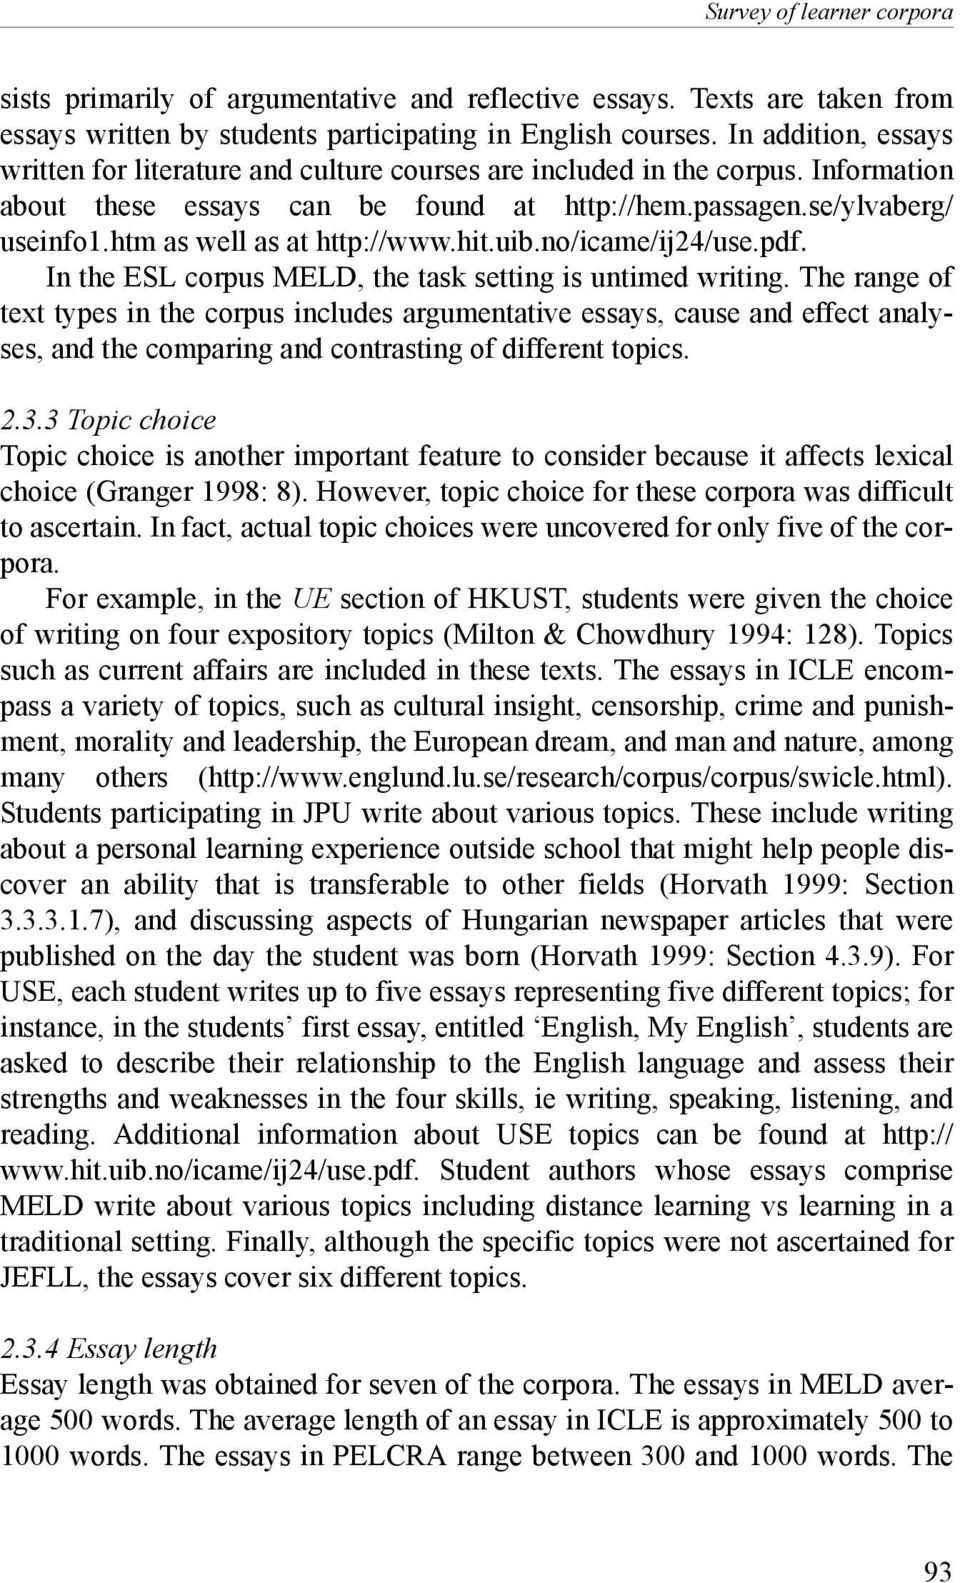 htm as well as at http://www.hit.uib.no/icame/ij24/use.pdf. In the ESL corpus MELD, the task setting is untimed writing.